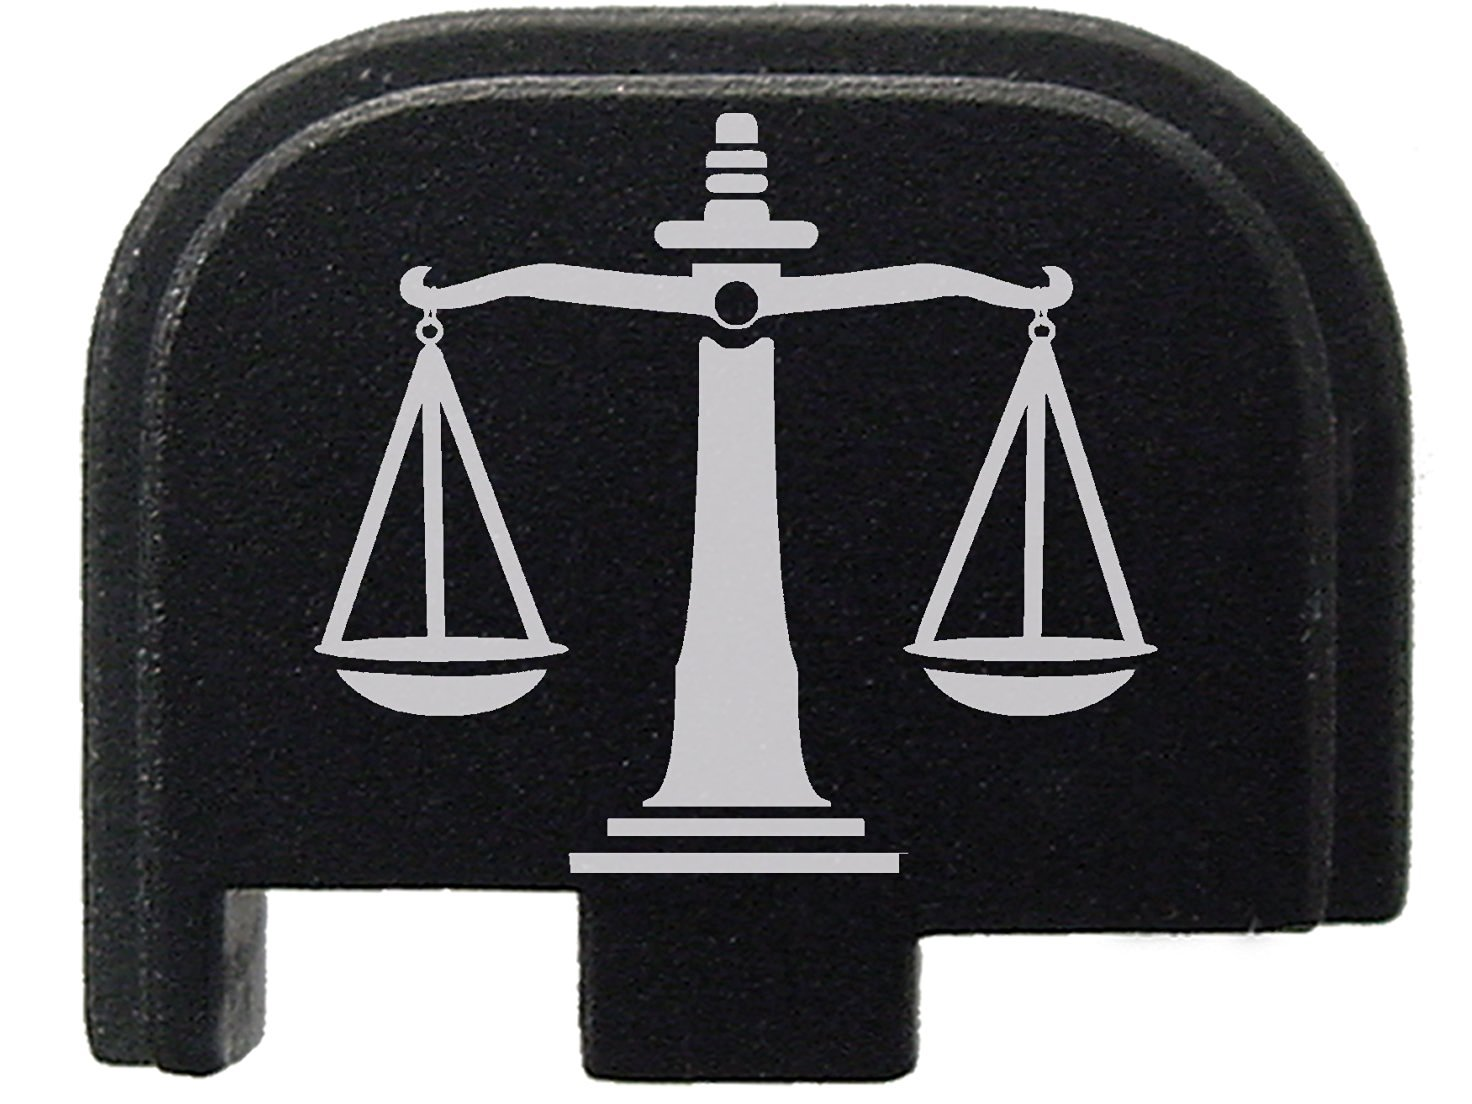 Black Rear Slide Cover Plate for Glock 42 G42 .380 ONLY Justice Scales By NDZ Performance